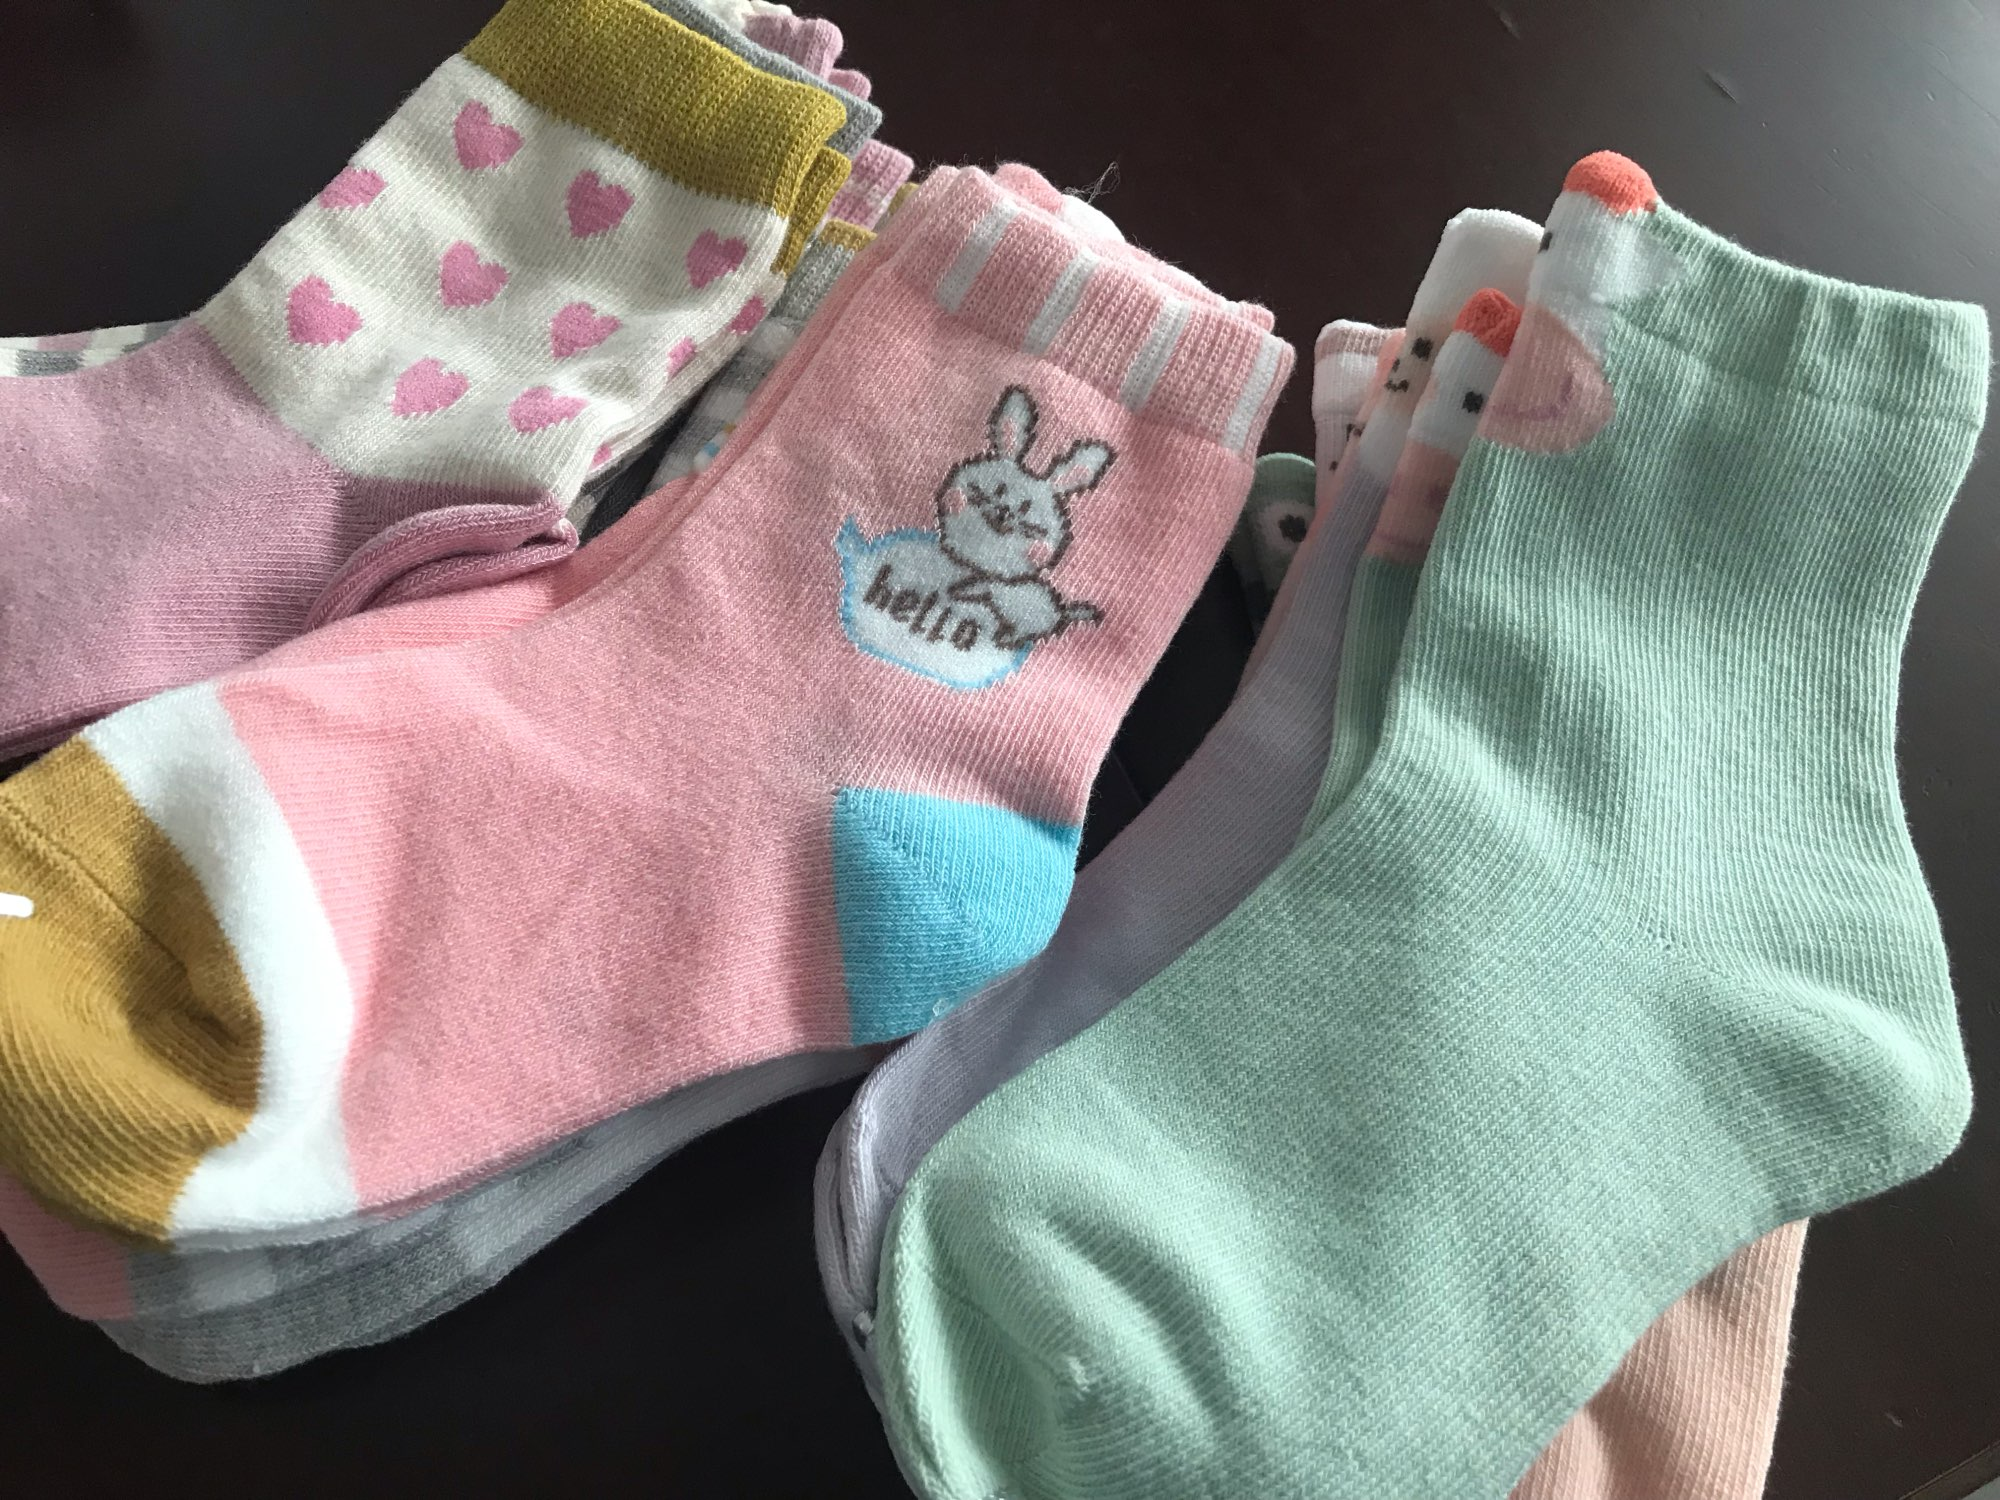 5 Pairs/lot Cute Cartoon Baby Girls Socks Winter Thicken Soft Kawaii Infant Toddler Socks Cotton Baby Boy Sports Socks for 1-12Y photo review